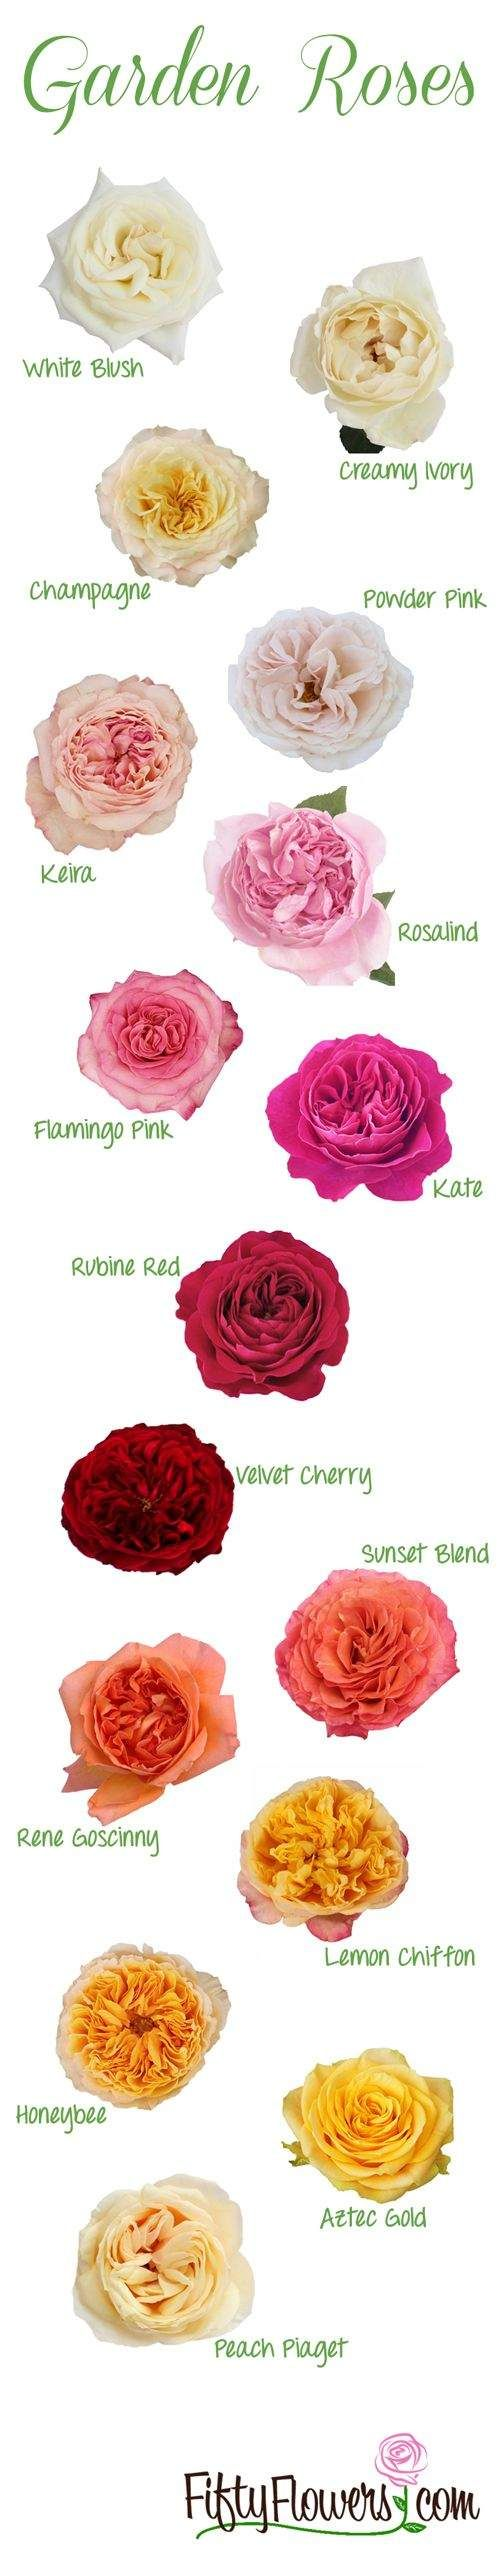 Ok, this one is for the flower lovers looking for wedding planning tips. Ifyou're like me, then you have a very limited understanding about the difference between a white bush rose and a rosalind rose and other intricate details about flowers. Below you'll find tips from the floral experts to guide you through the process […]